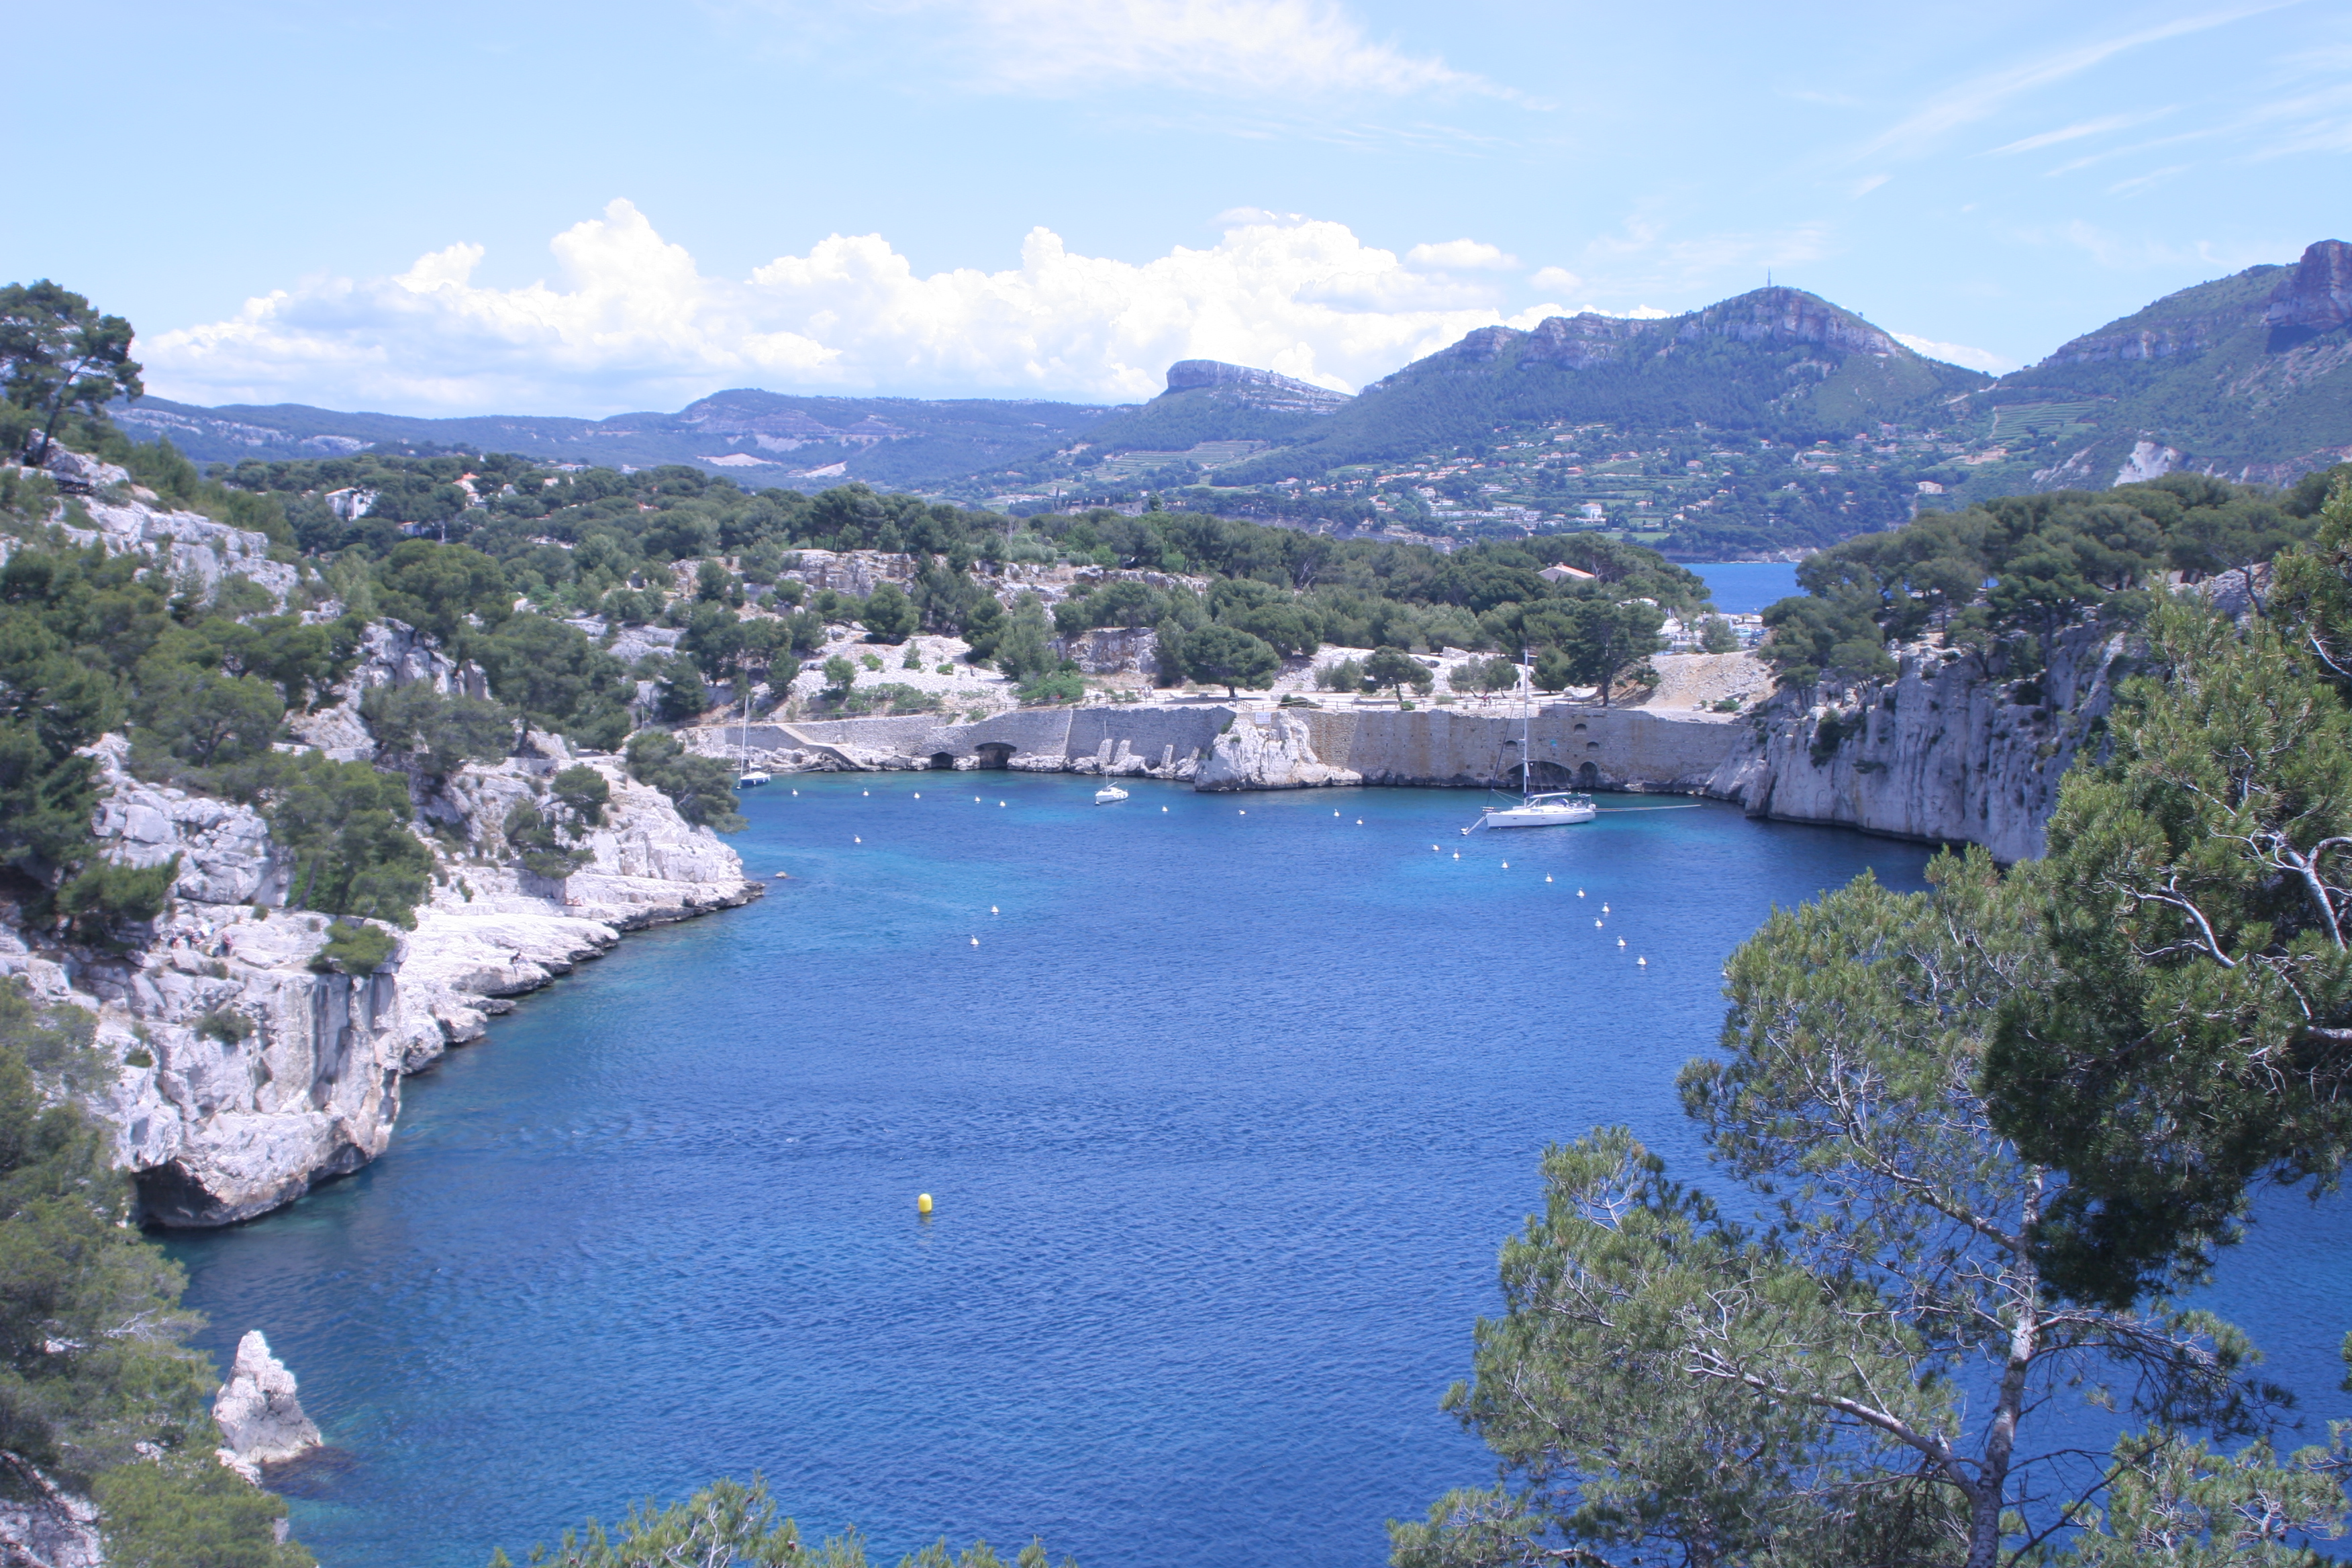 Looking down the mouth of Calanque Port Miou, which flows into Cassis's cove and the Mediterranean. Cap Canaille rises in the background, as always.